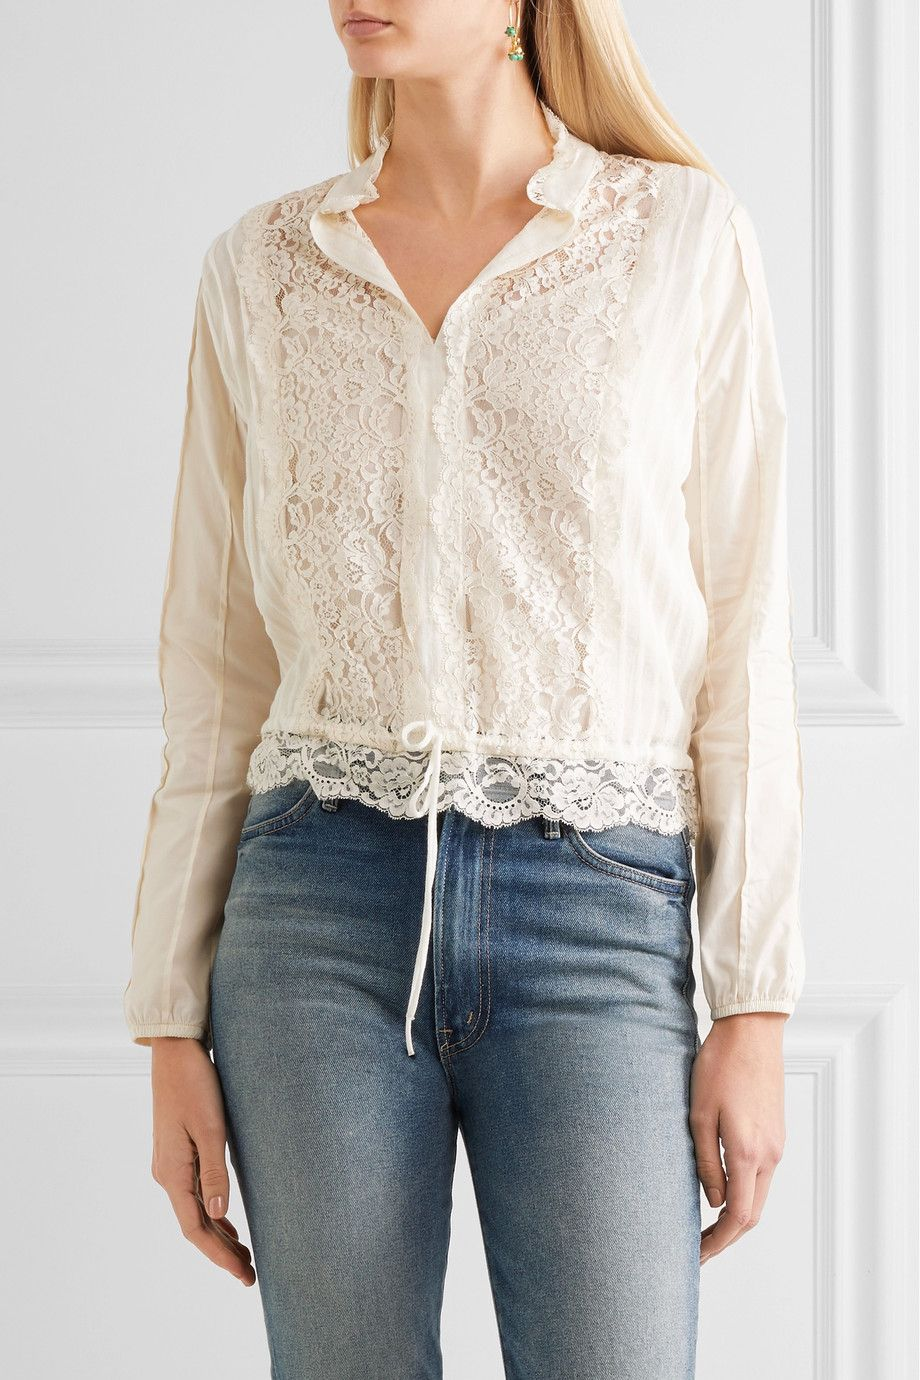 8e569cc2705356 See by Chloé   Pintucked voile, lace and cotton blouse   NET-A-PORTER.COM